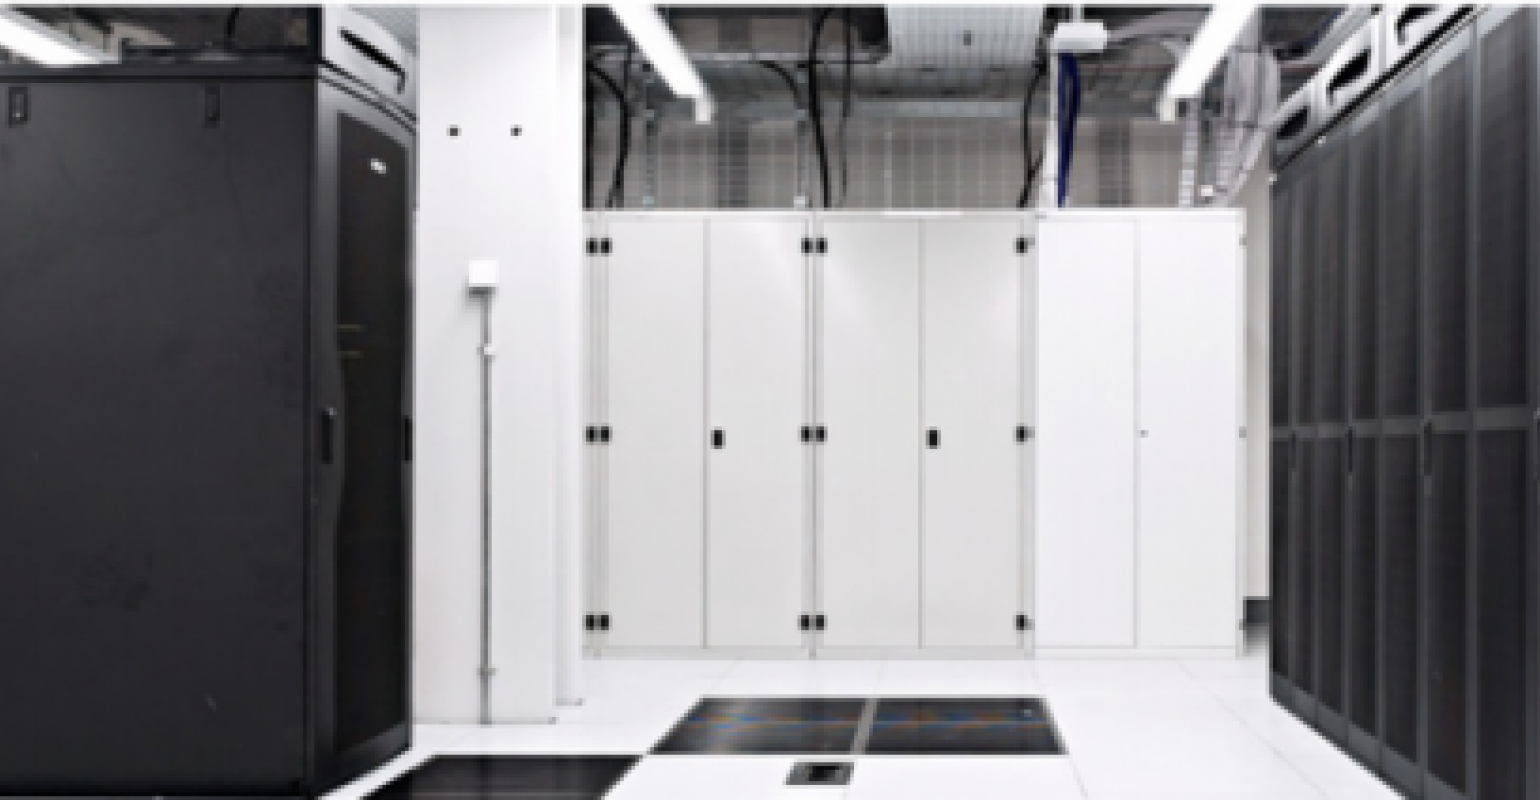 Week's Second London Data Center Outage Disrupts